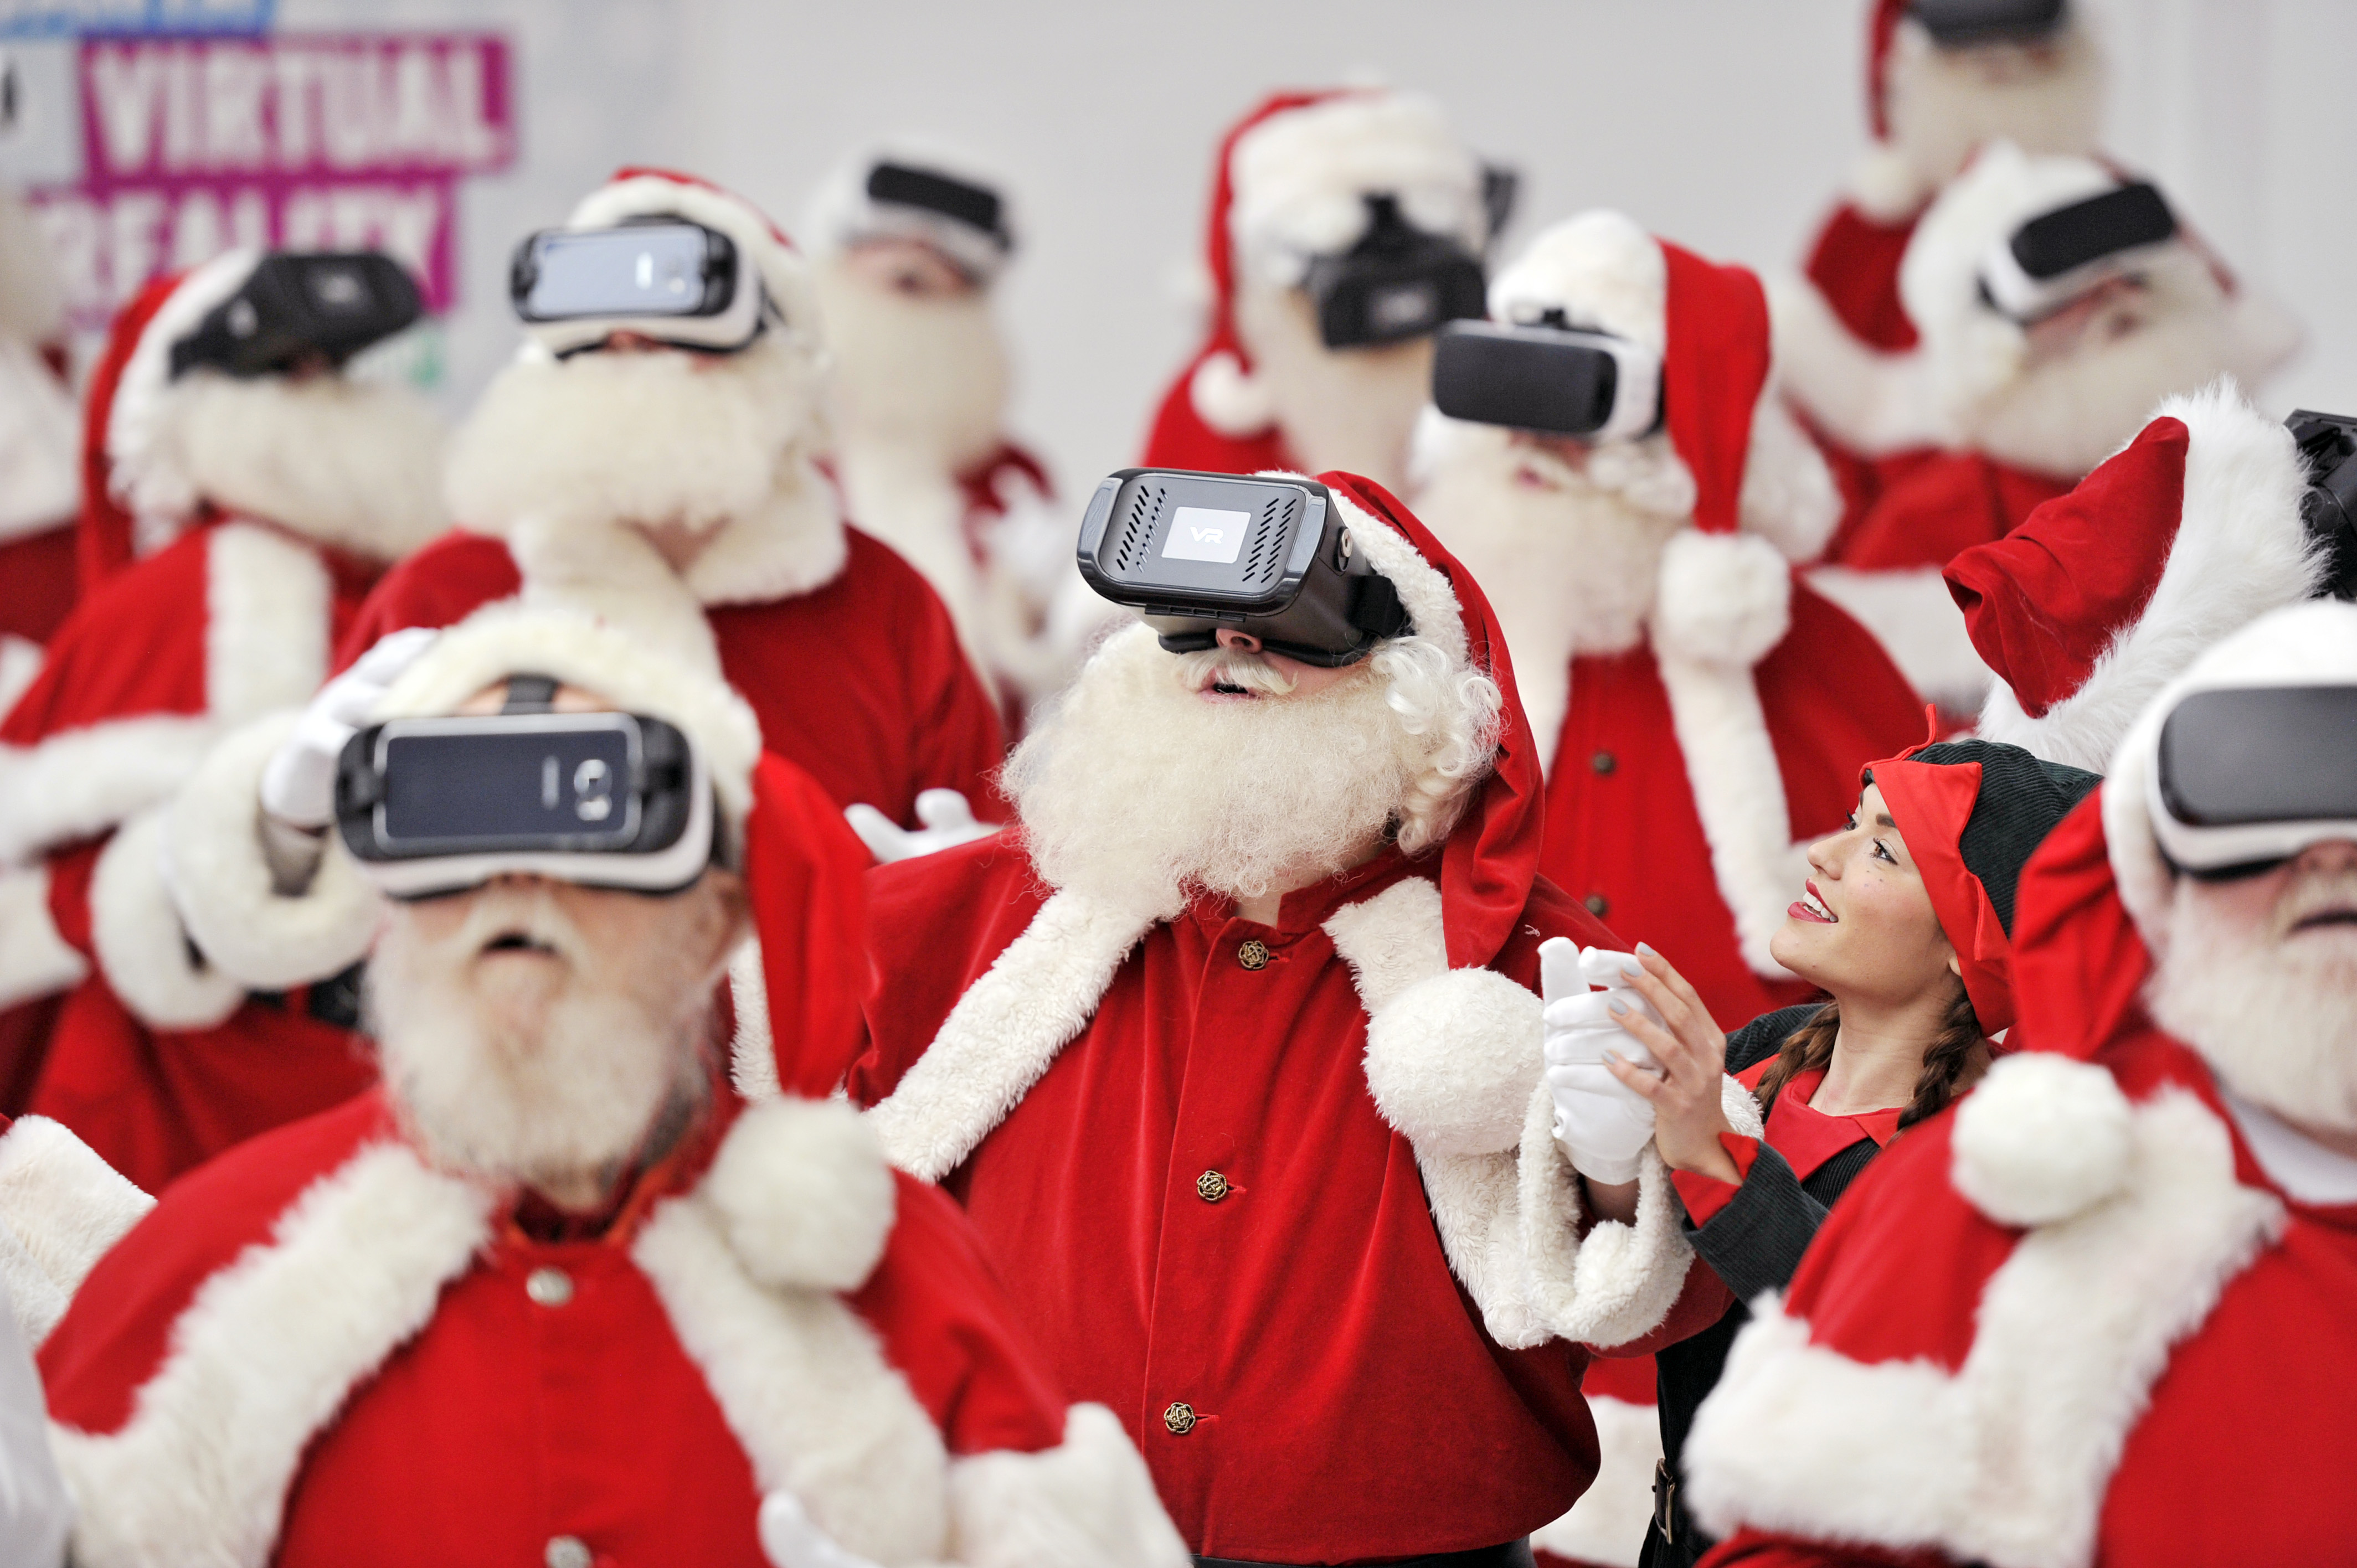 A group of Father Christmases wearing virtual reality headsets experience the technology being guided by an elf.